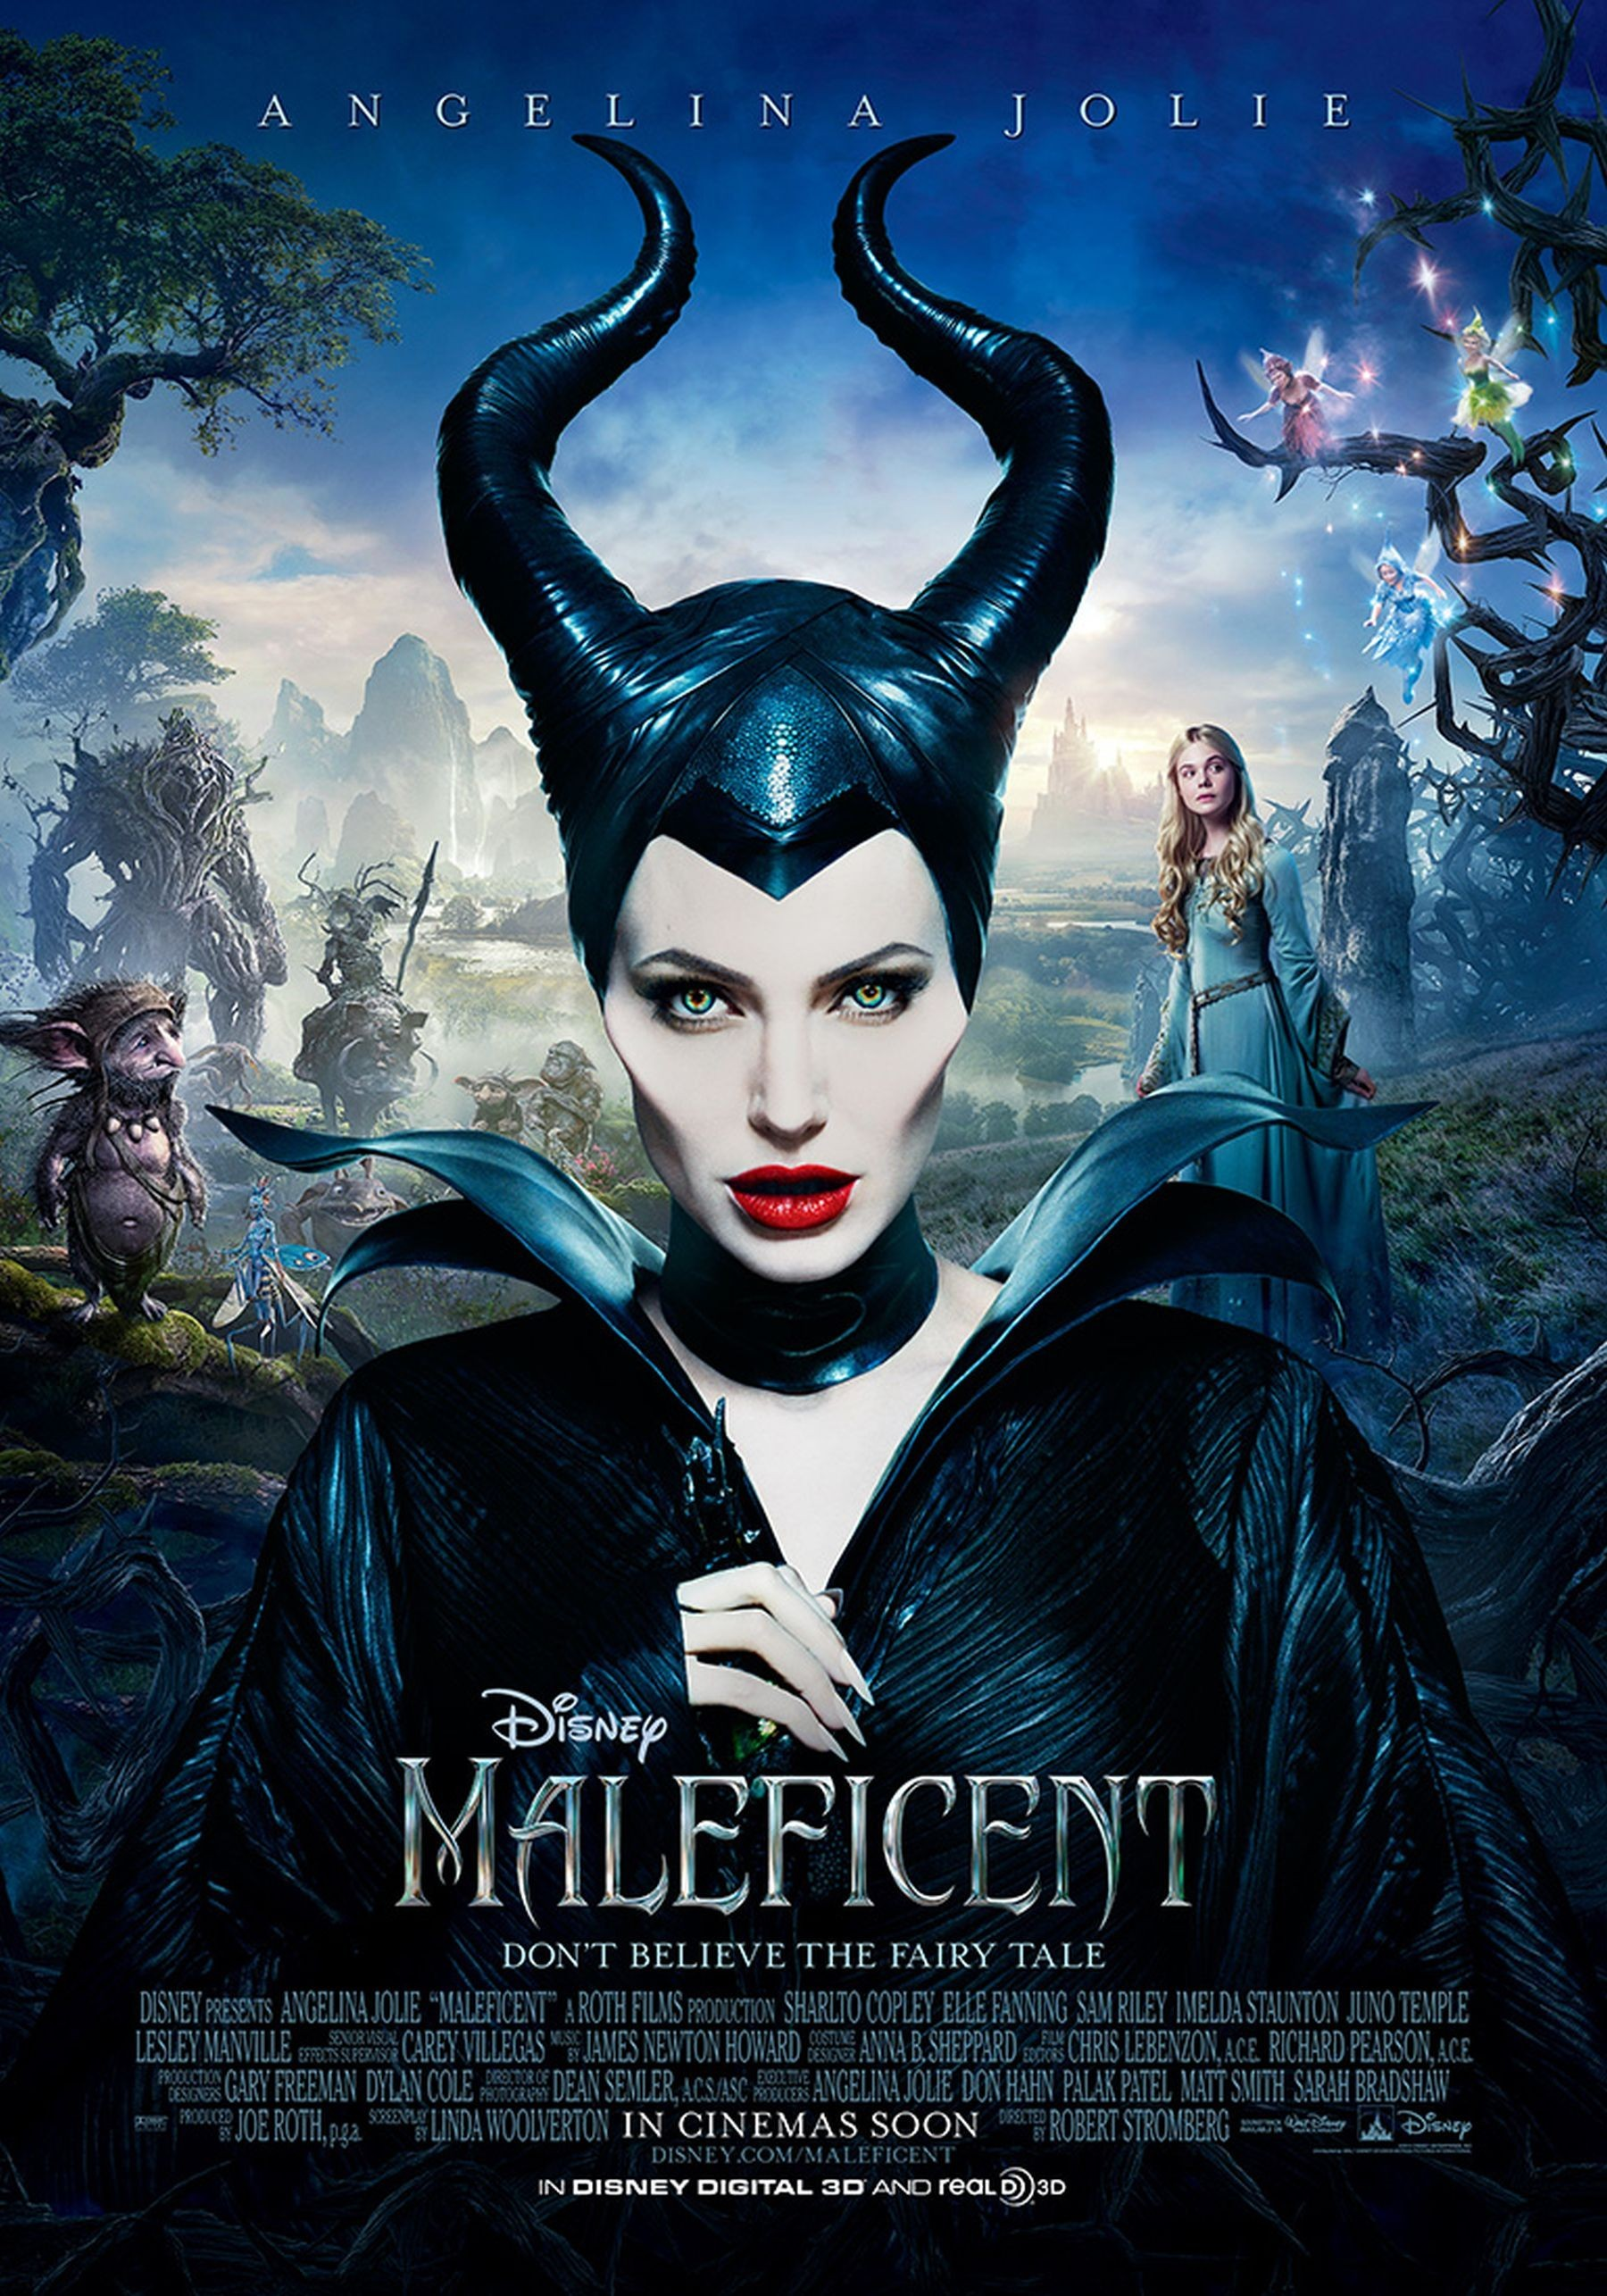 Maleficent Costume Pattern - Magnificent Film Angelina Jolie , HD Wallpaper & Backgrounds